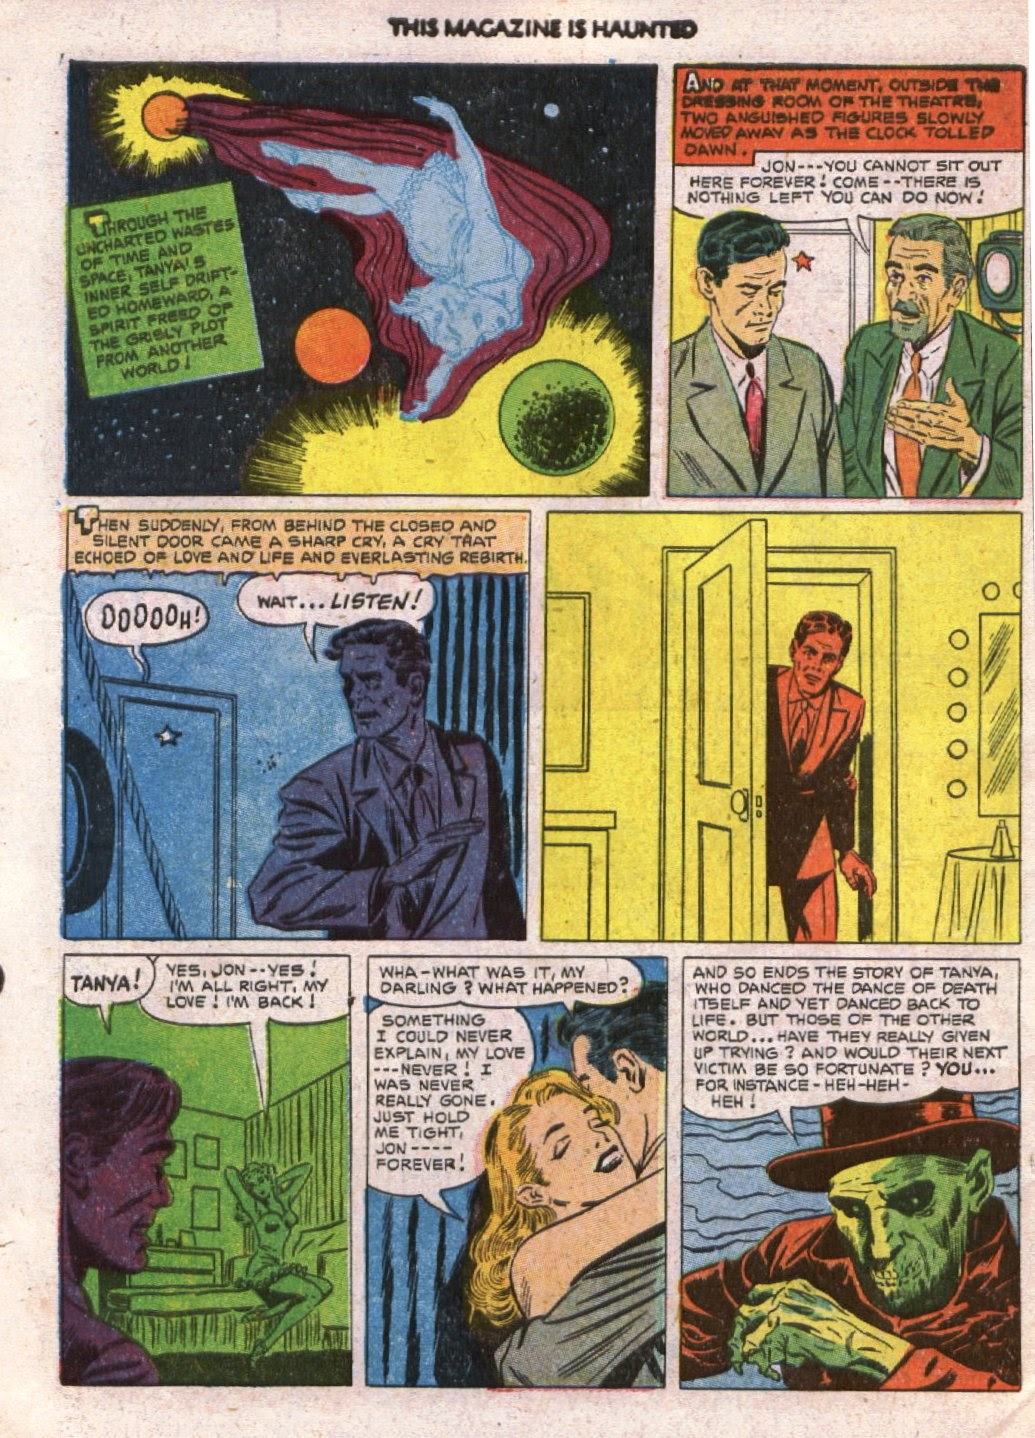 Read online This Magazine Is Haunted comic -  Issue #8 - 34